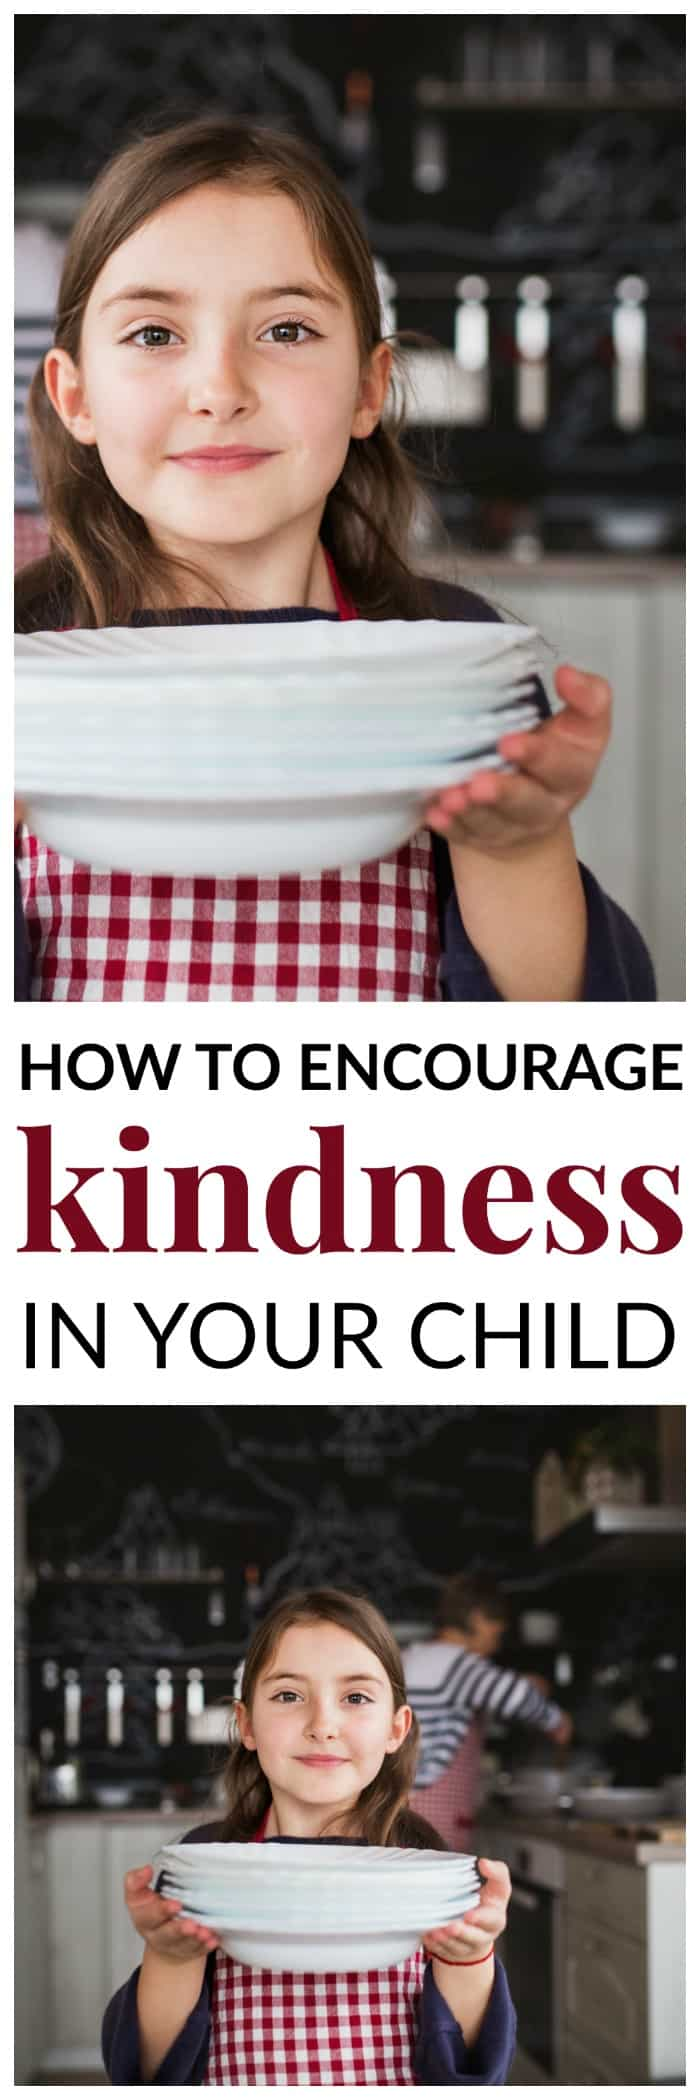 Tips to encourage kindness in your child